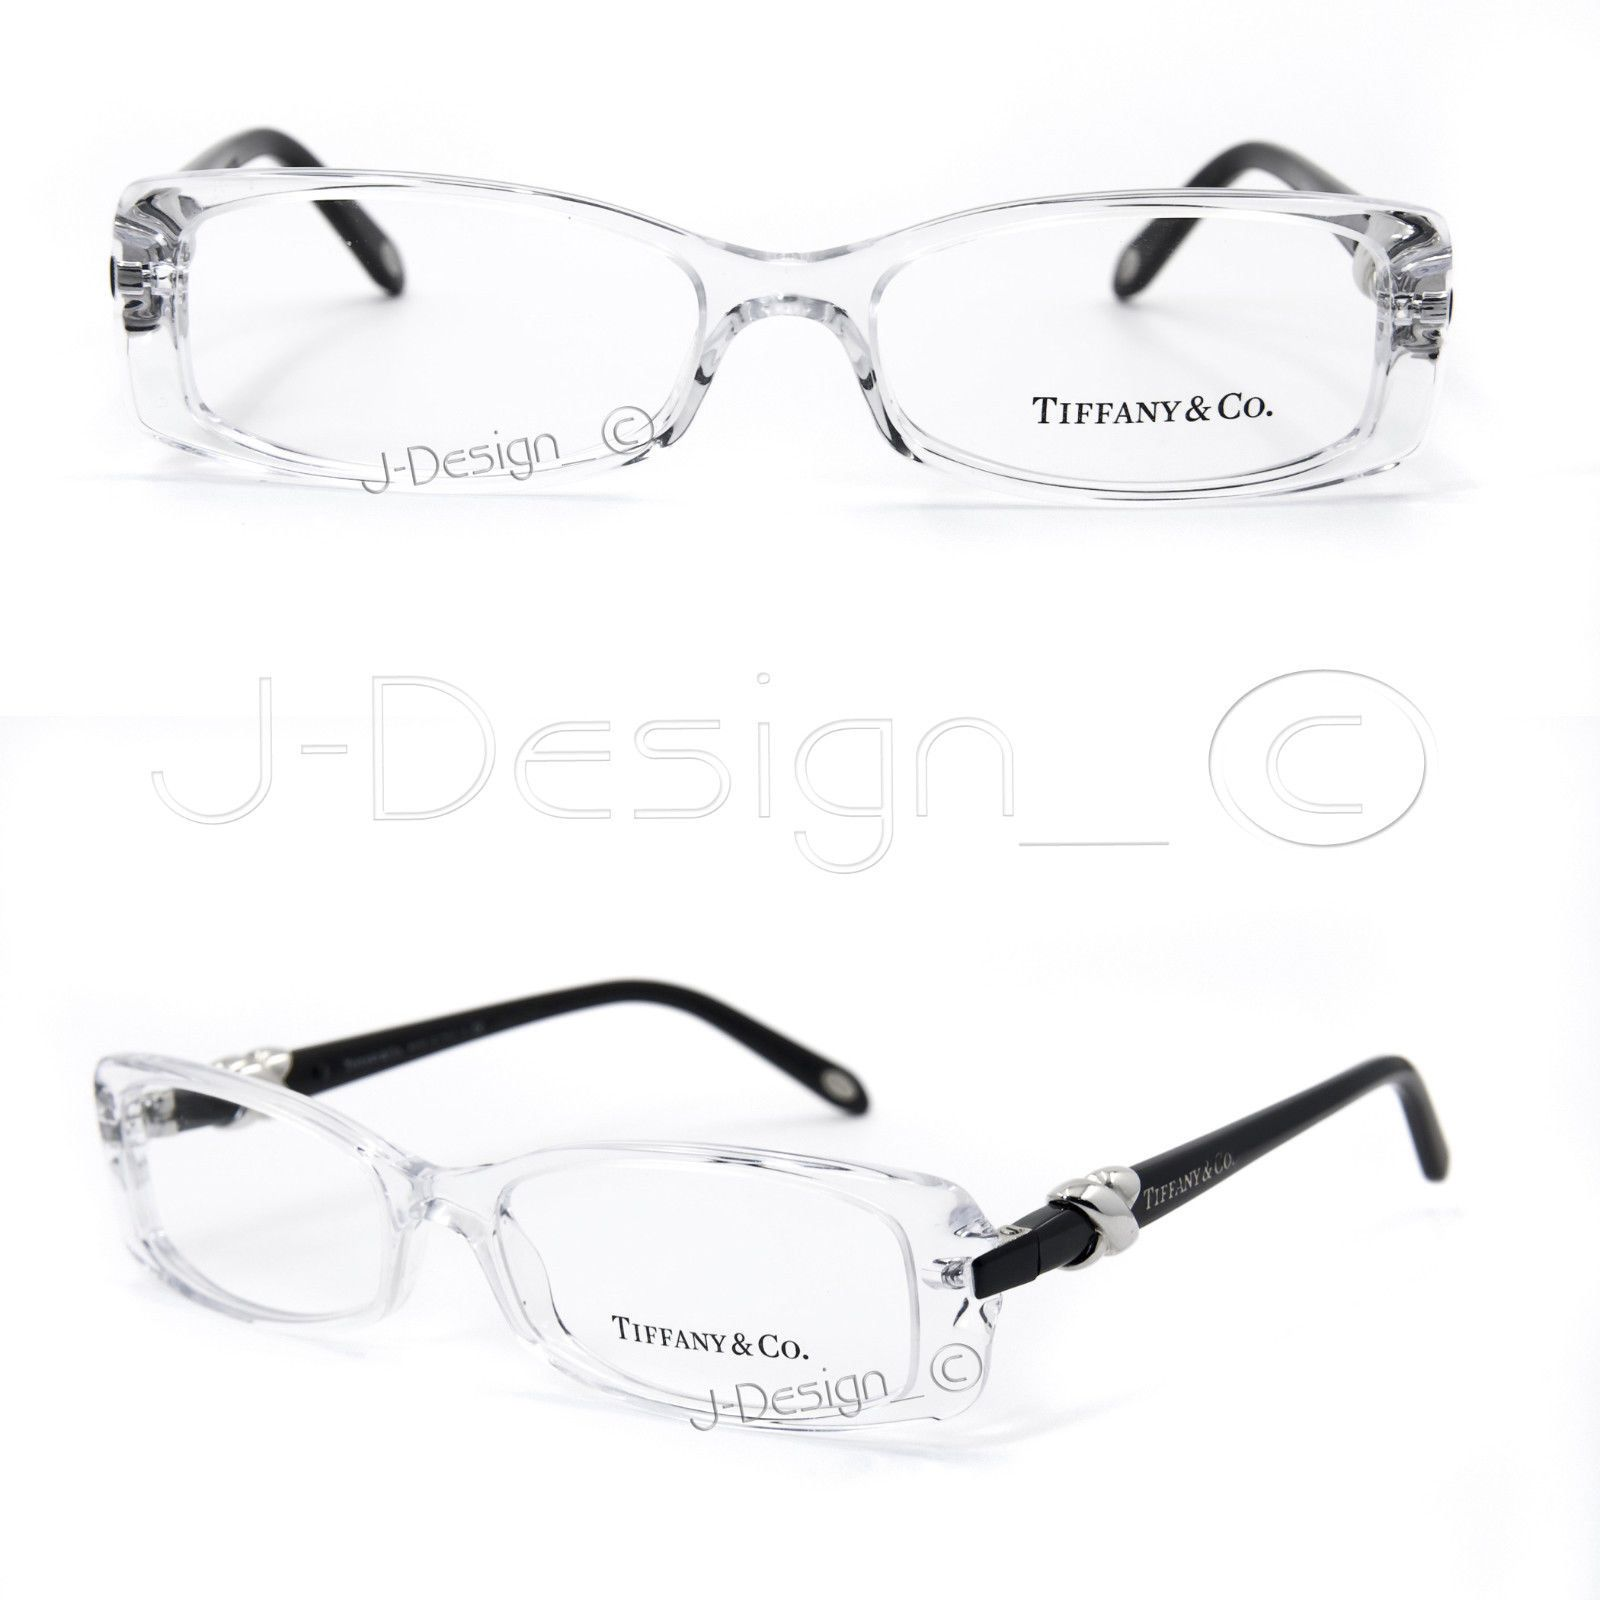 6dbeae9fe3d Tiffany Co. Rx eyeglass frames - I must have these!